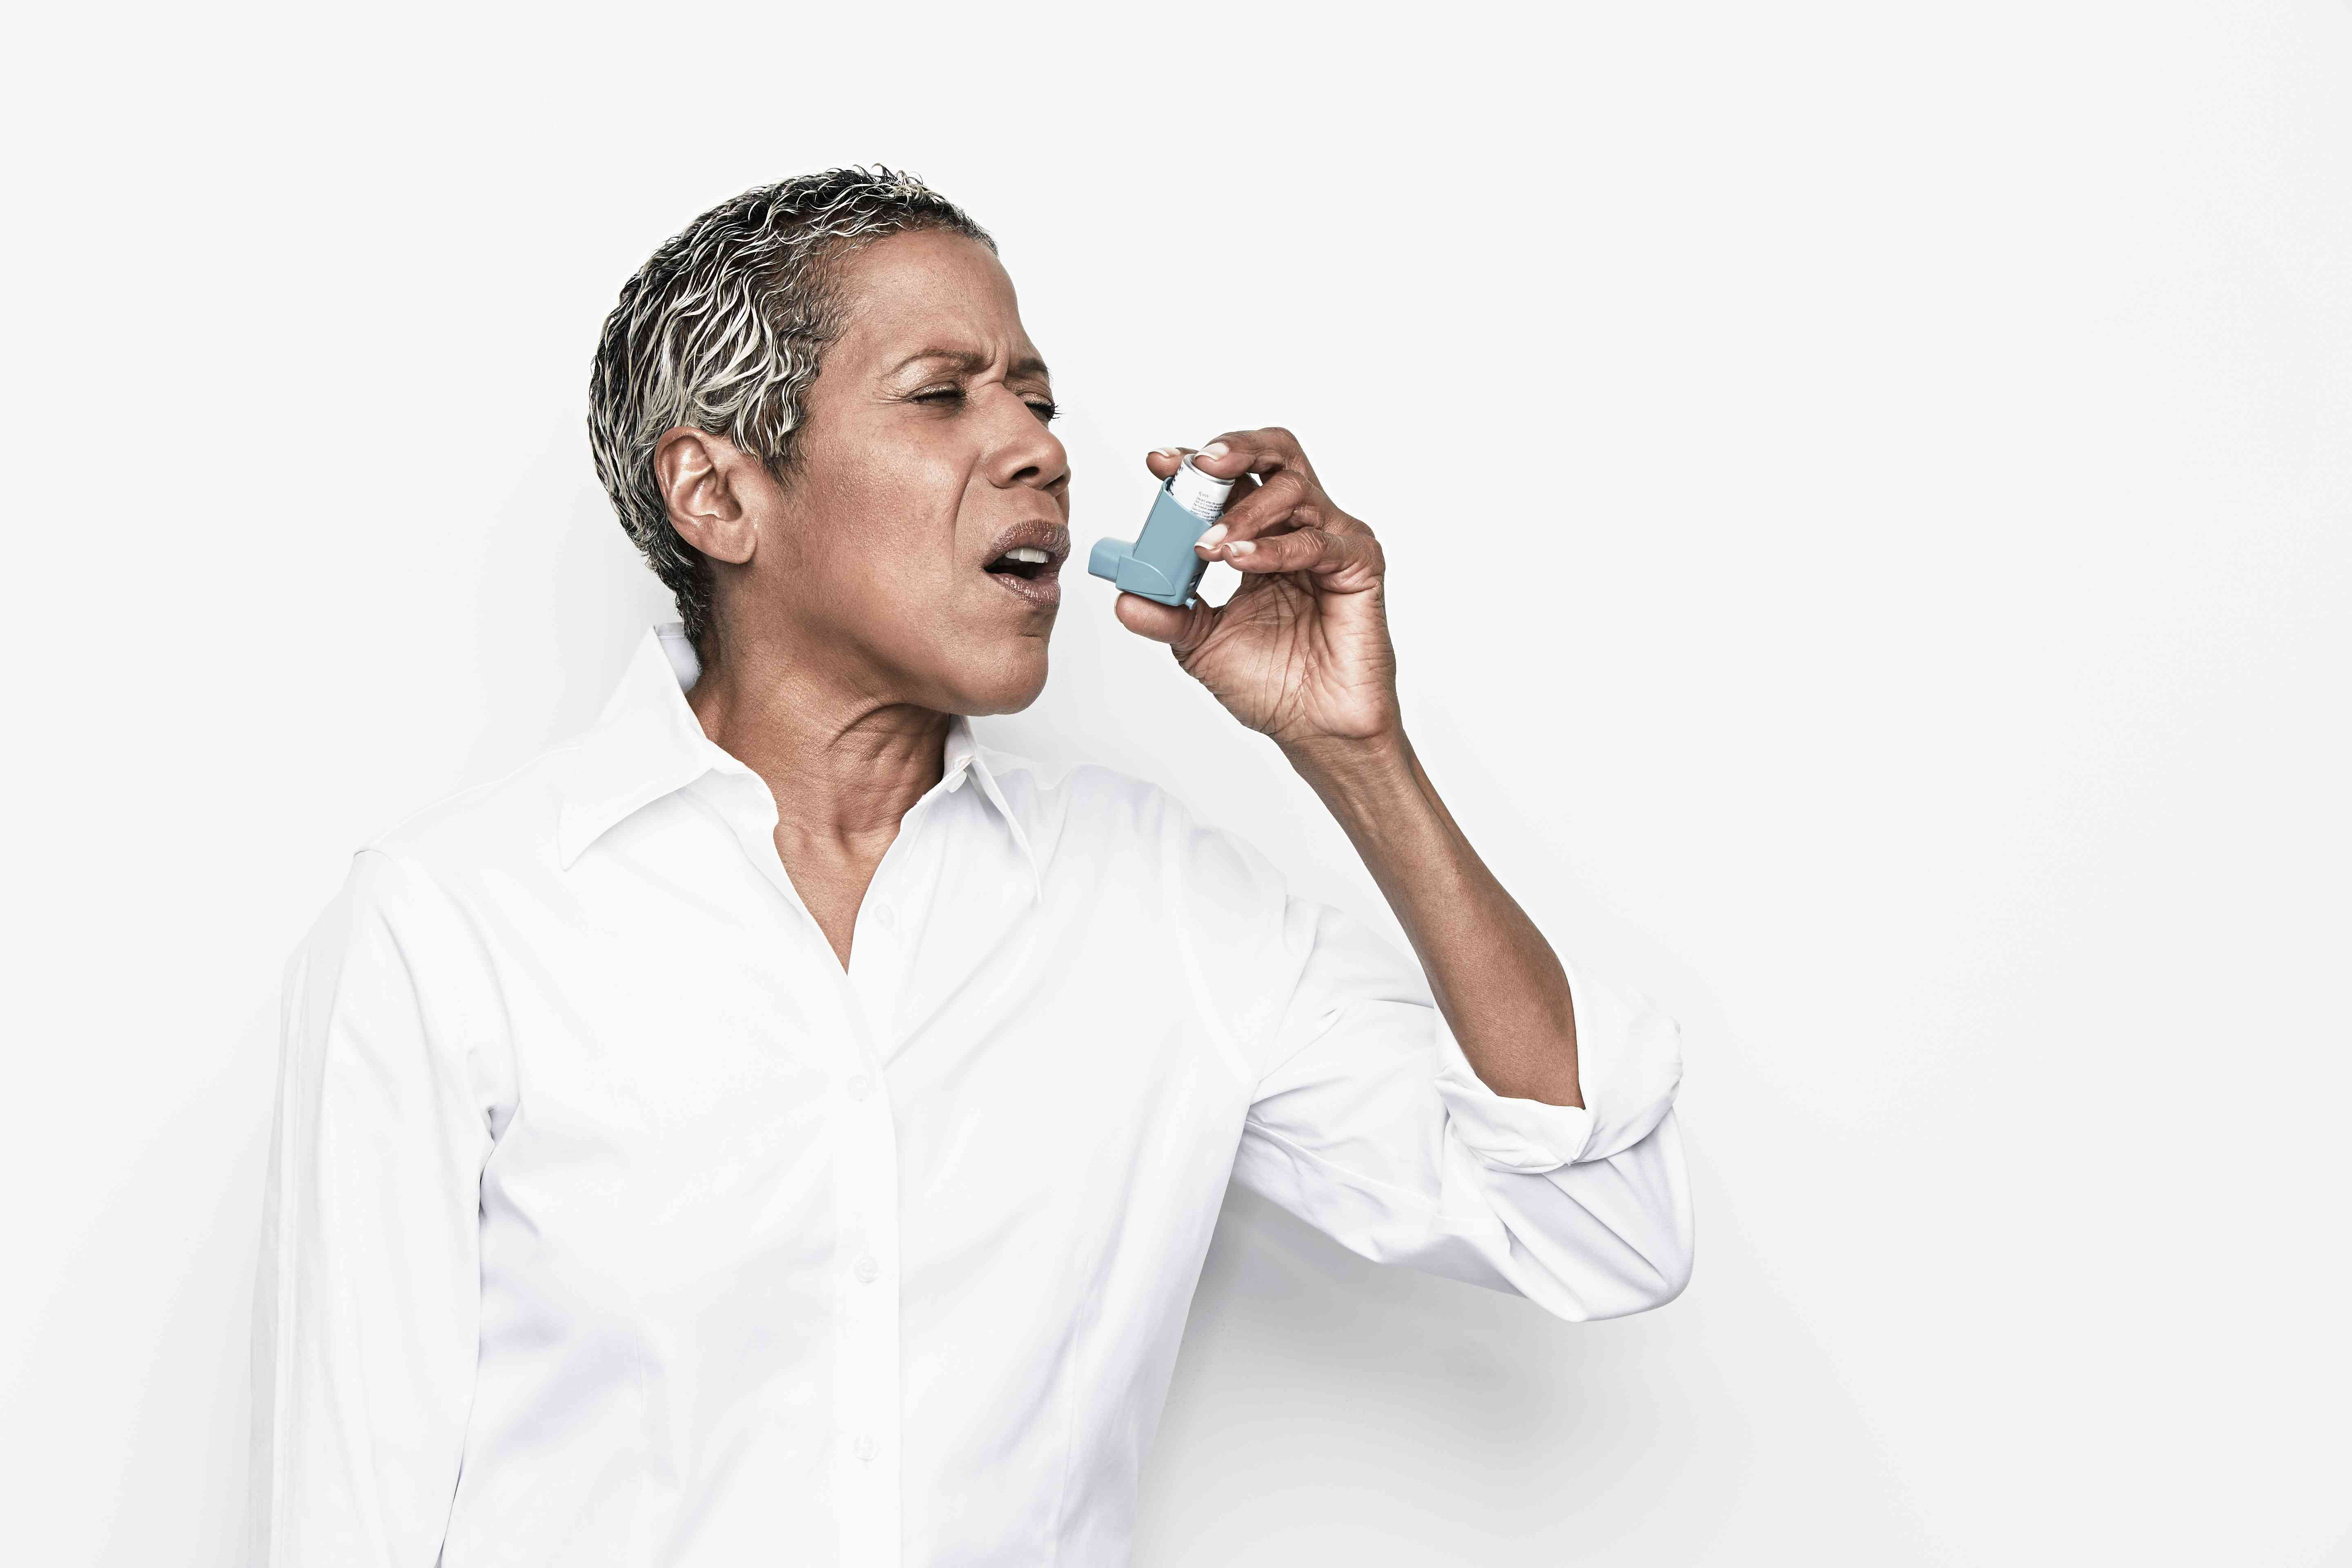 Woman in a white shirt using an inhaler standing against a white background